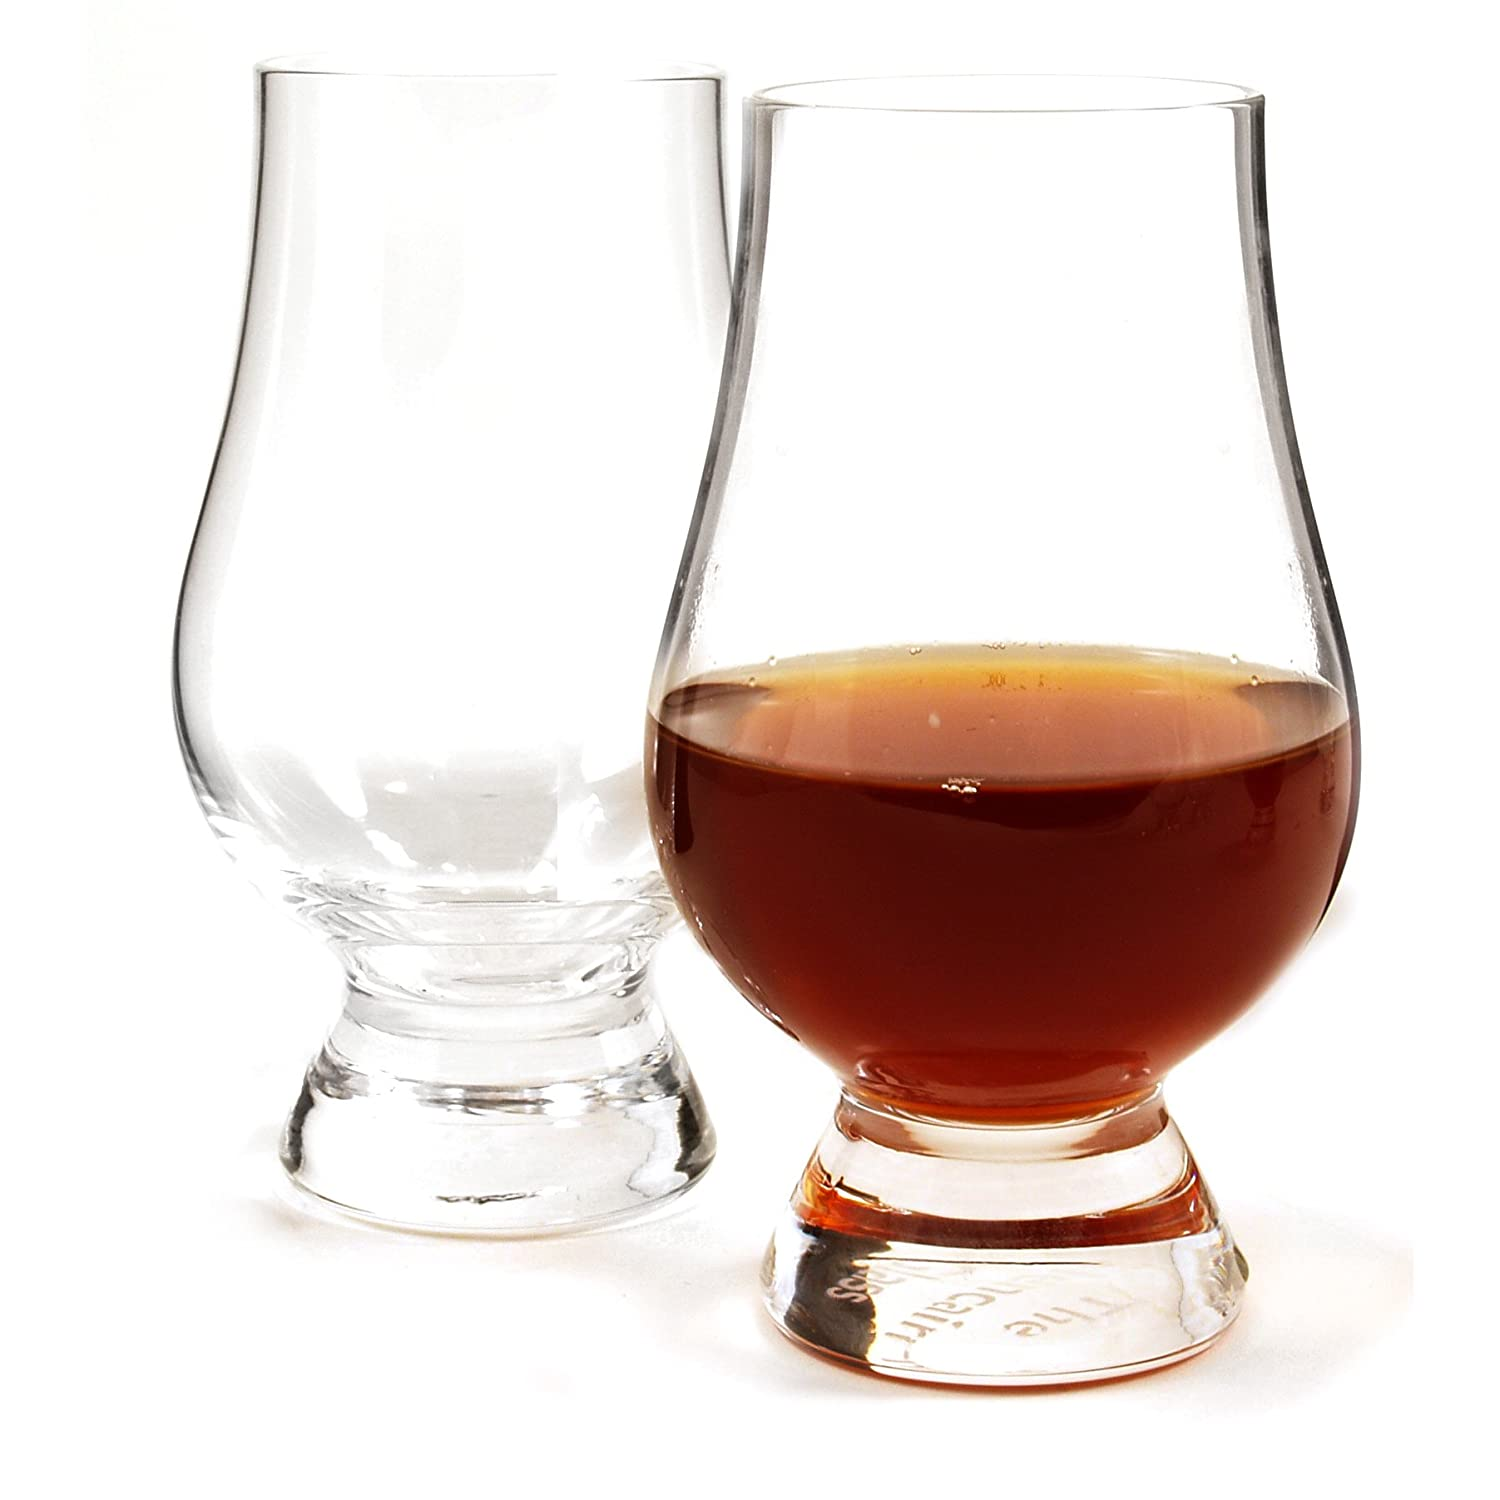 glencairn crystal whiskey glass set of 2 the official whiskey glass new ebay. Black Bedroom Furniture Sets. Home Design Ideas